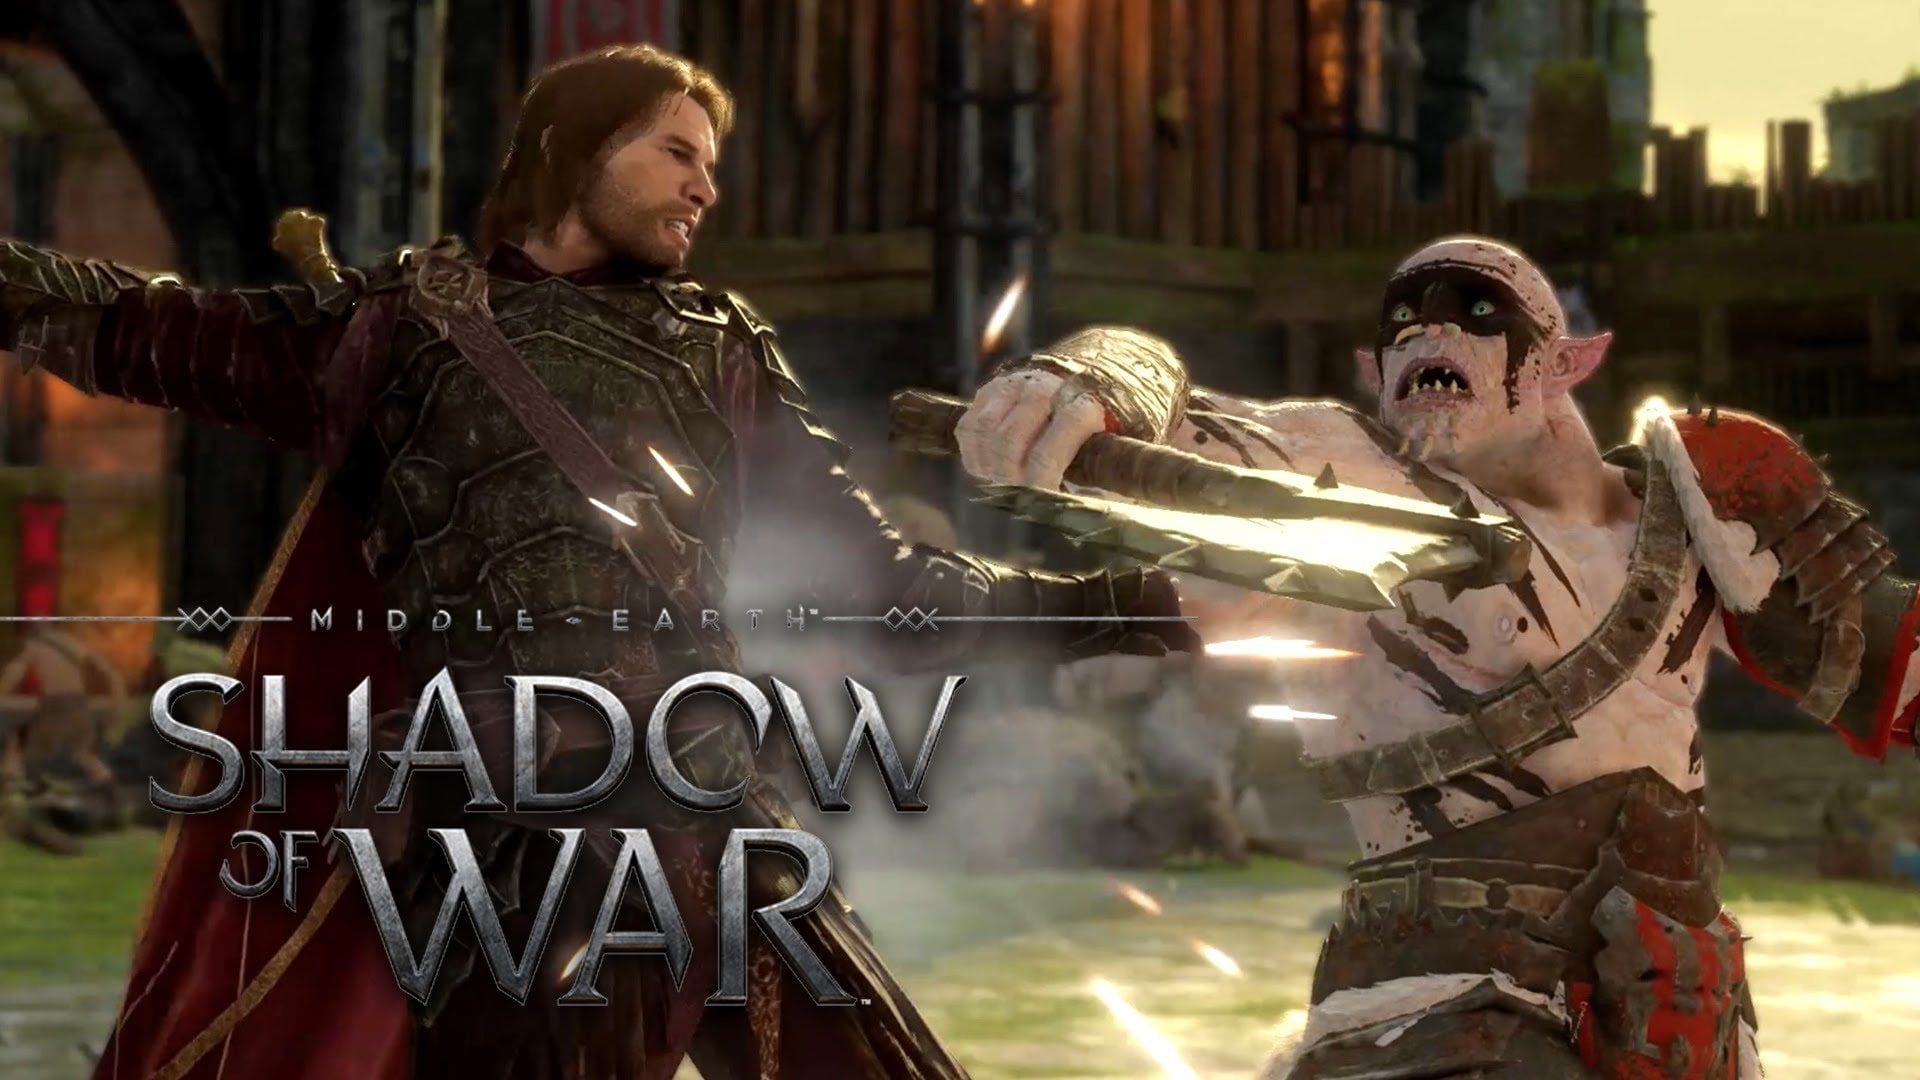 Middle-earth: Shadow of War Activation key + Features PC Game Free Download